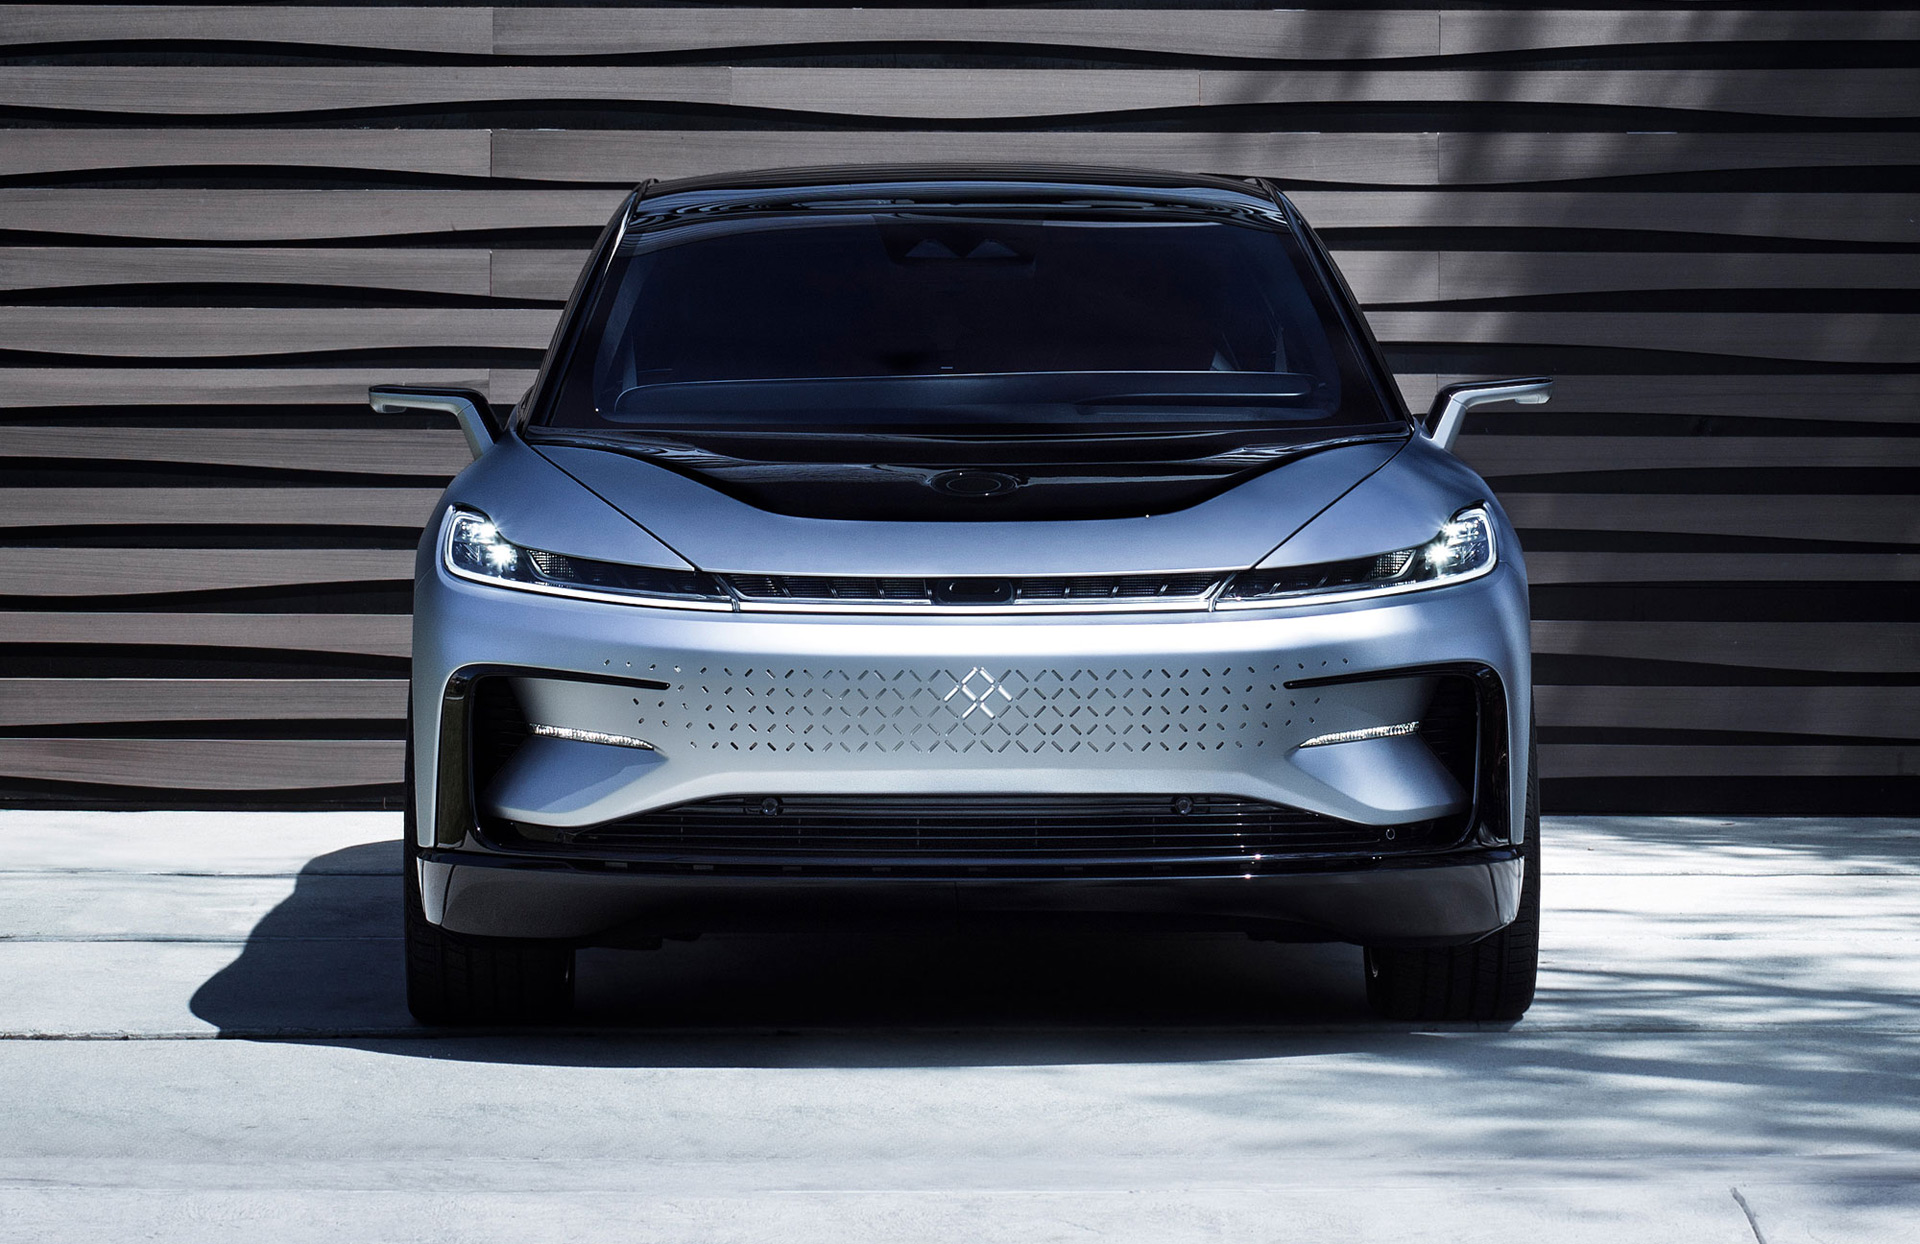 2019 Hyundai Veloster >> Faraday Future's Chinese backer placed on debt blacklist in latest setback for automaker